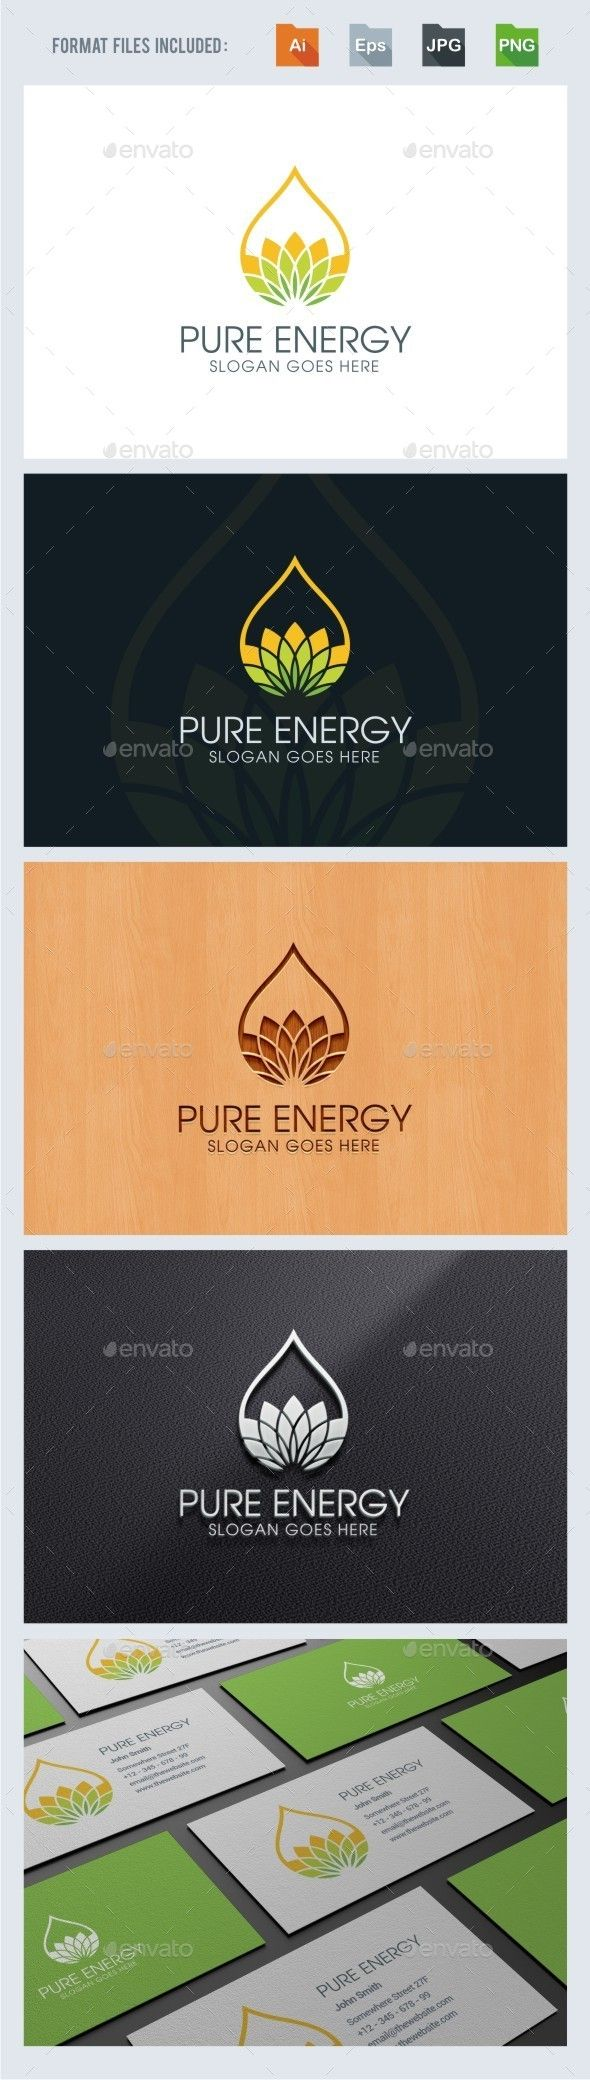 Pure - Eco Energy Logo Template,beauty, bright, cooling, drop, dynamic, eco energy, education, efficient, energy, fitness, flower, fresh, green, healthy, industry, jewelry, life, light, lotus, media, medical, oil drop, reliable, renewable, solar power, Sustainable Energy, water drop, wellness, woman, yoga